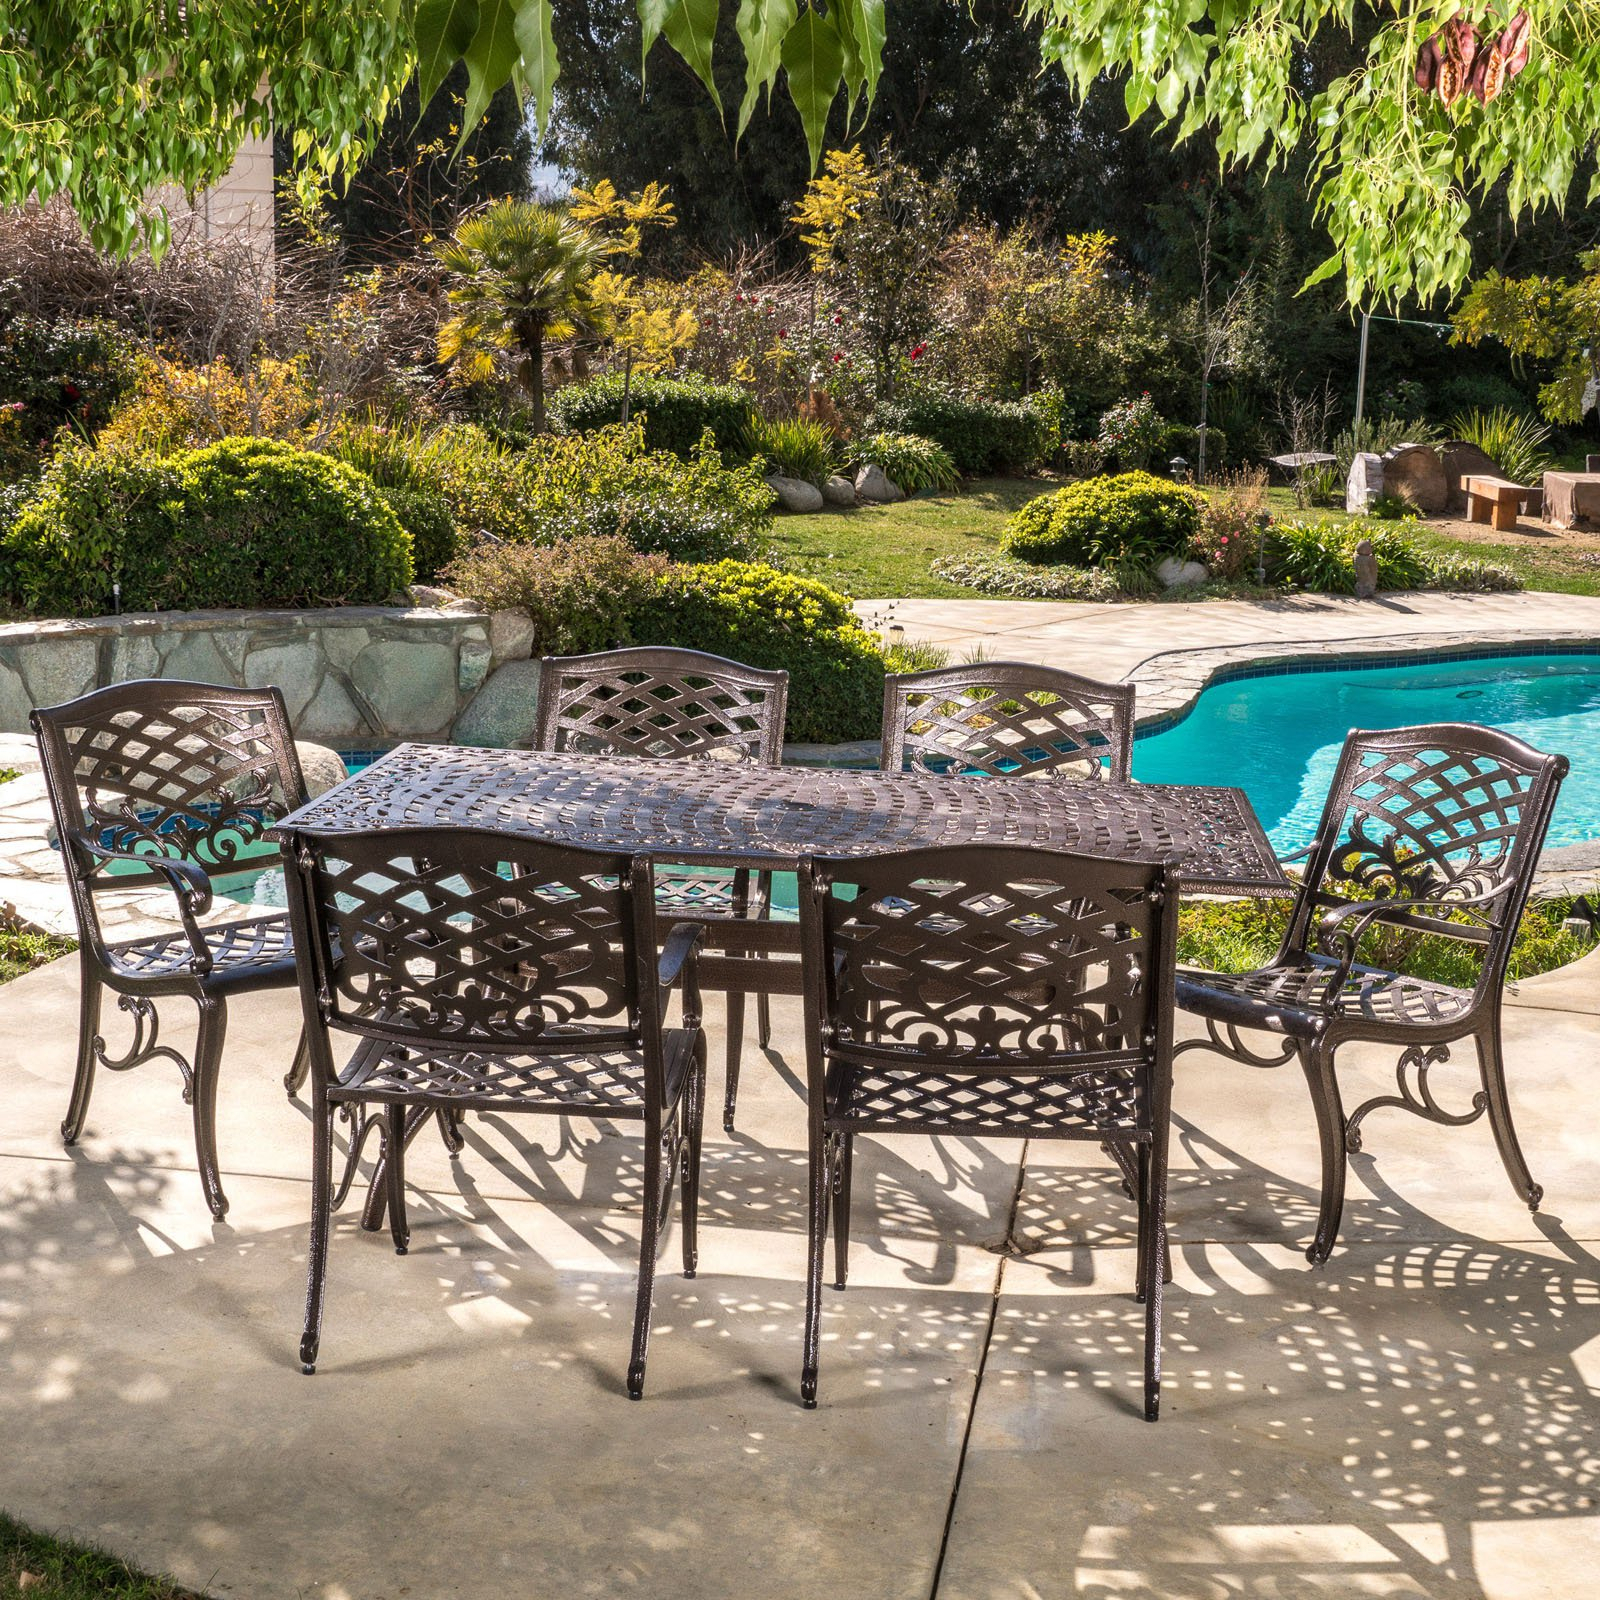 Michelle Aluminum 7 Piece Rectangular Patio Dining Set Pertaining To Michelle Metal Garden Benches (View 23 of 25)